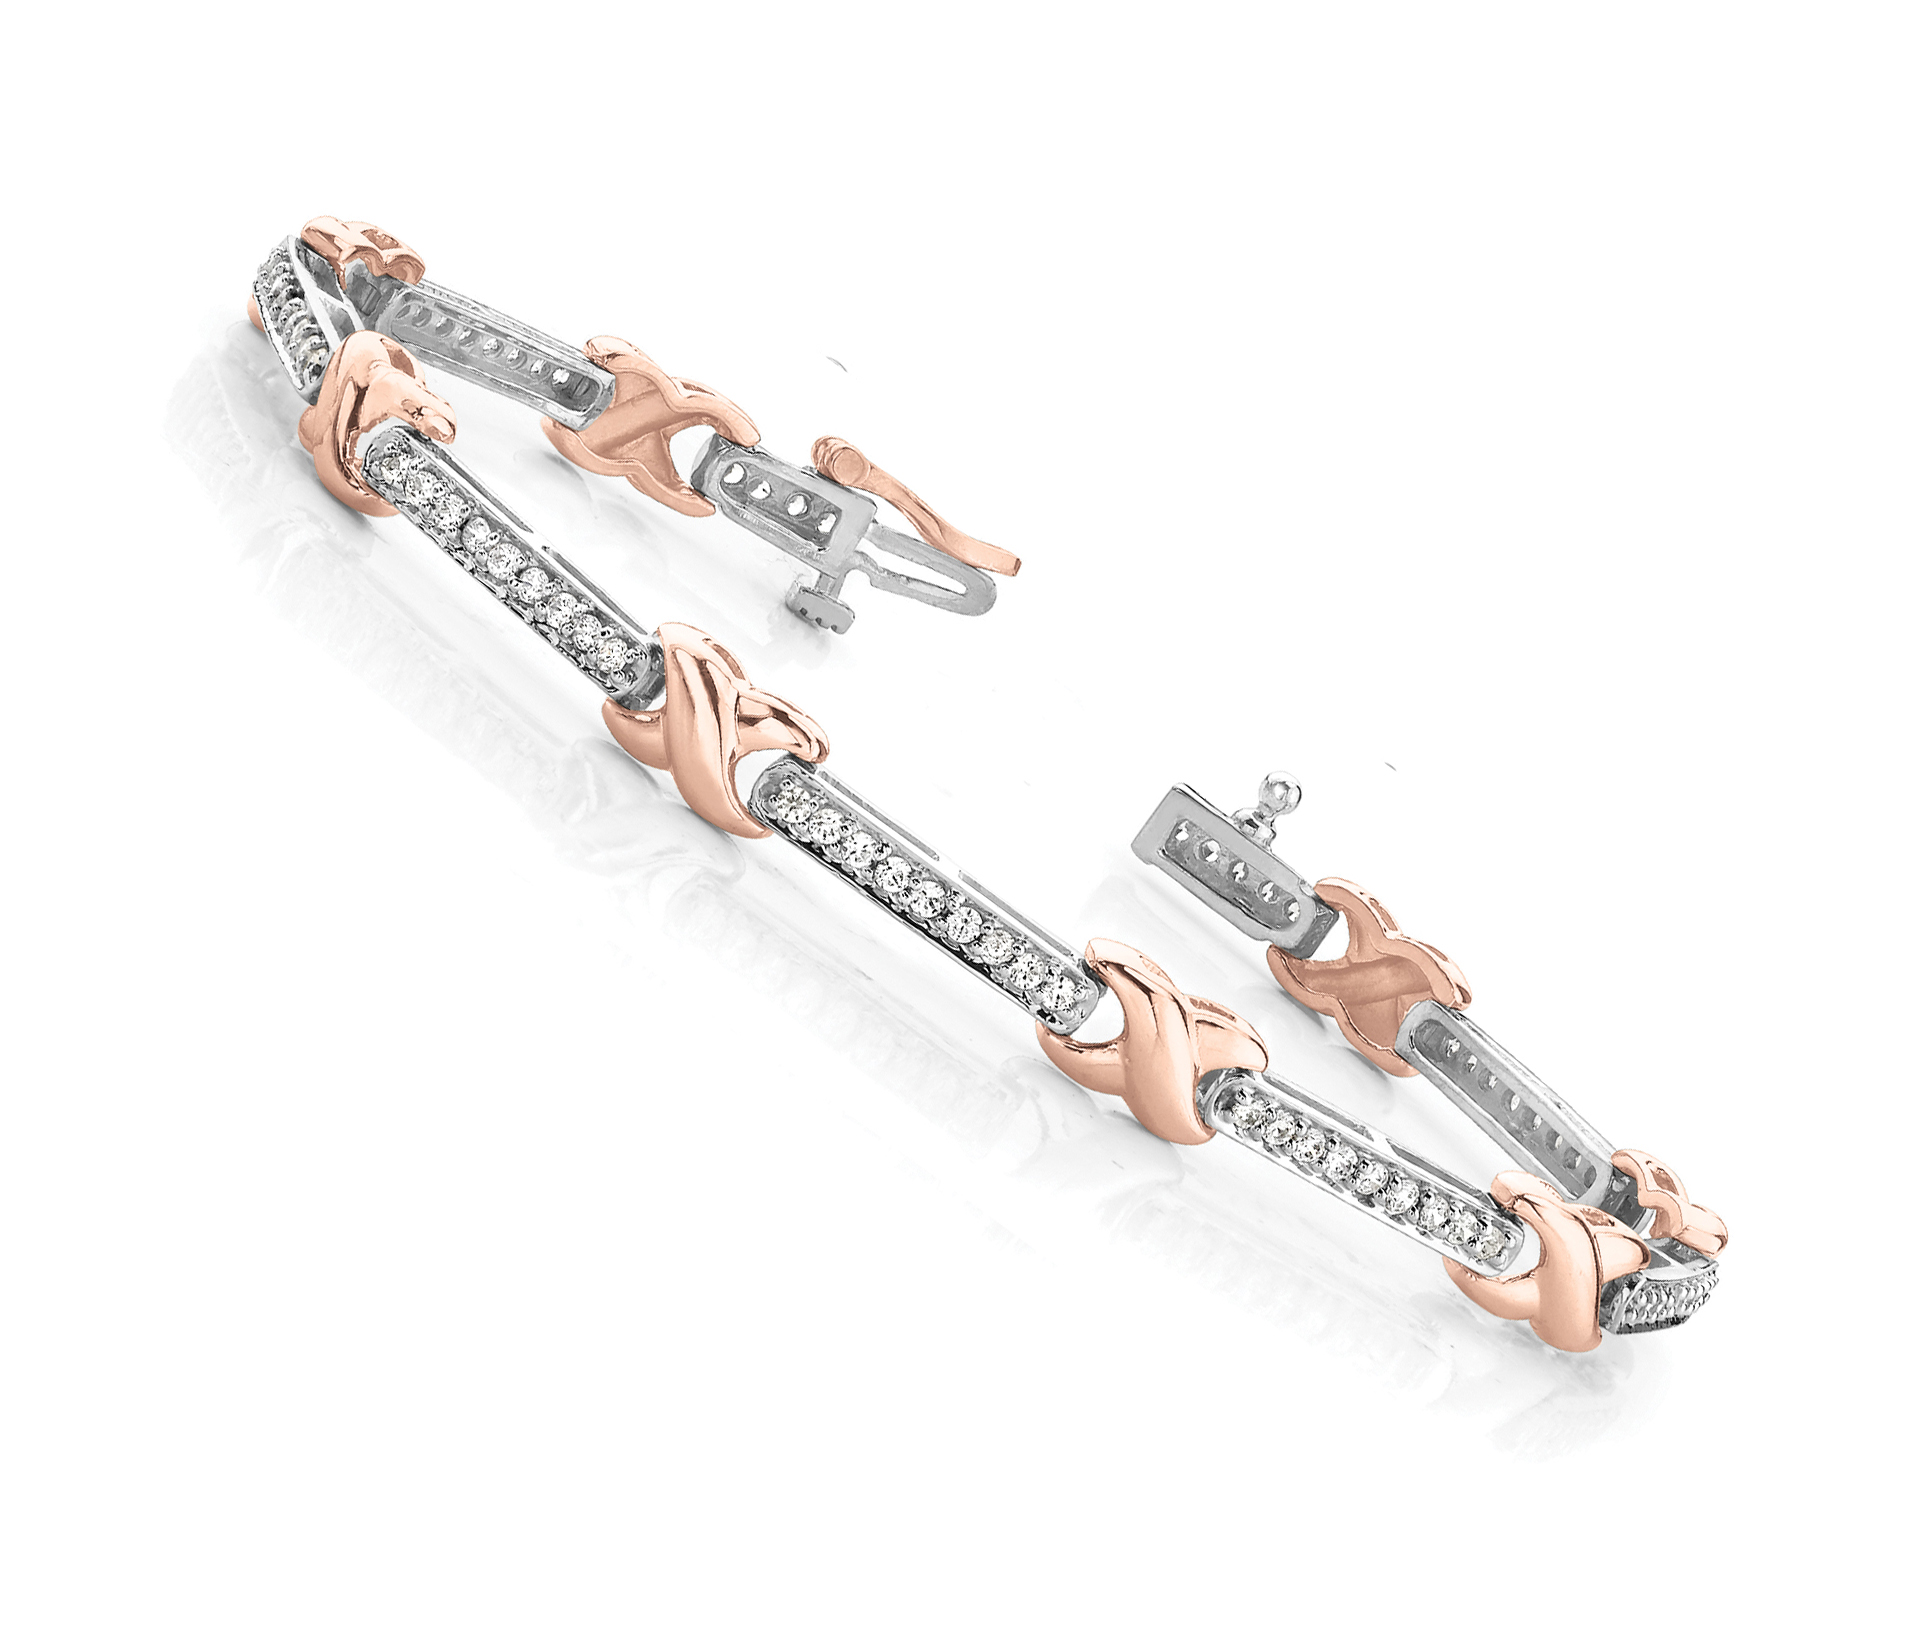 X and Bar Bracelet Channel Diamonds 1.8 CT. Rose & White Gold